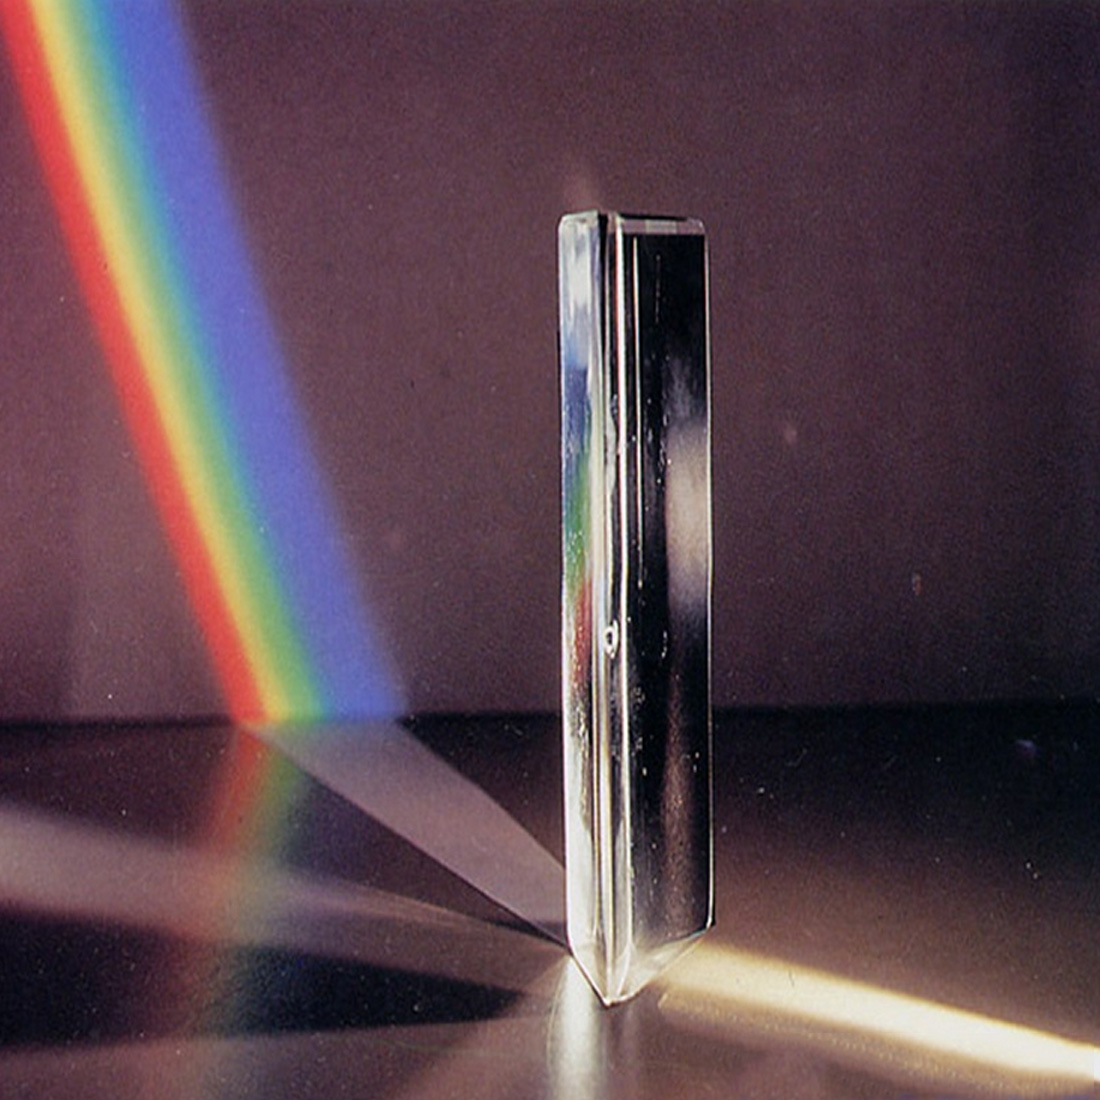 Right Angle Reflecting Triangular Prism K9 Optical Glass For Teaching Light Spectrum